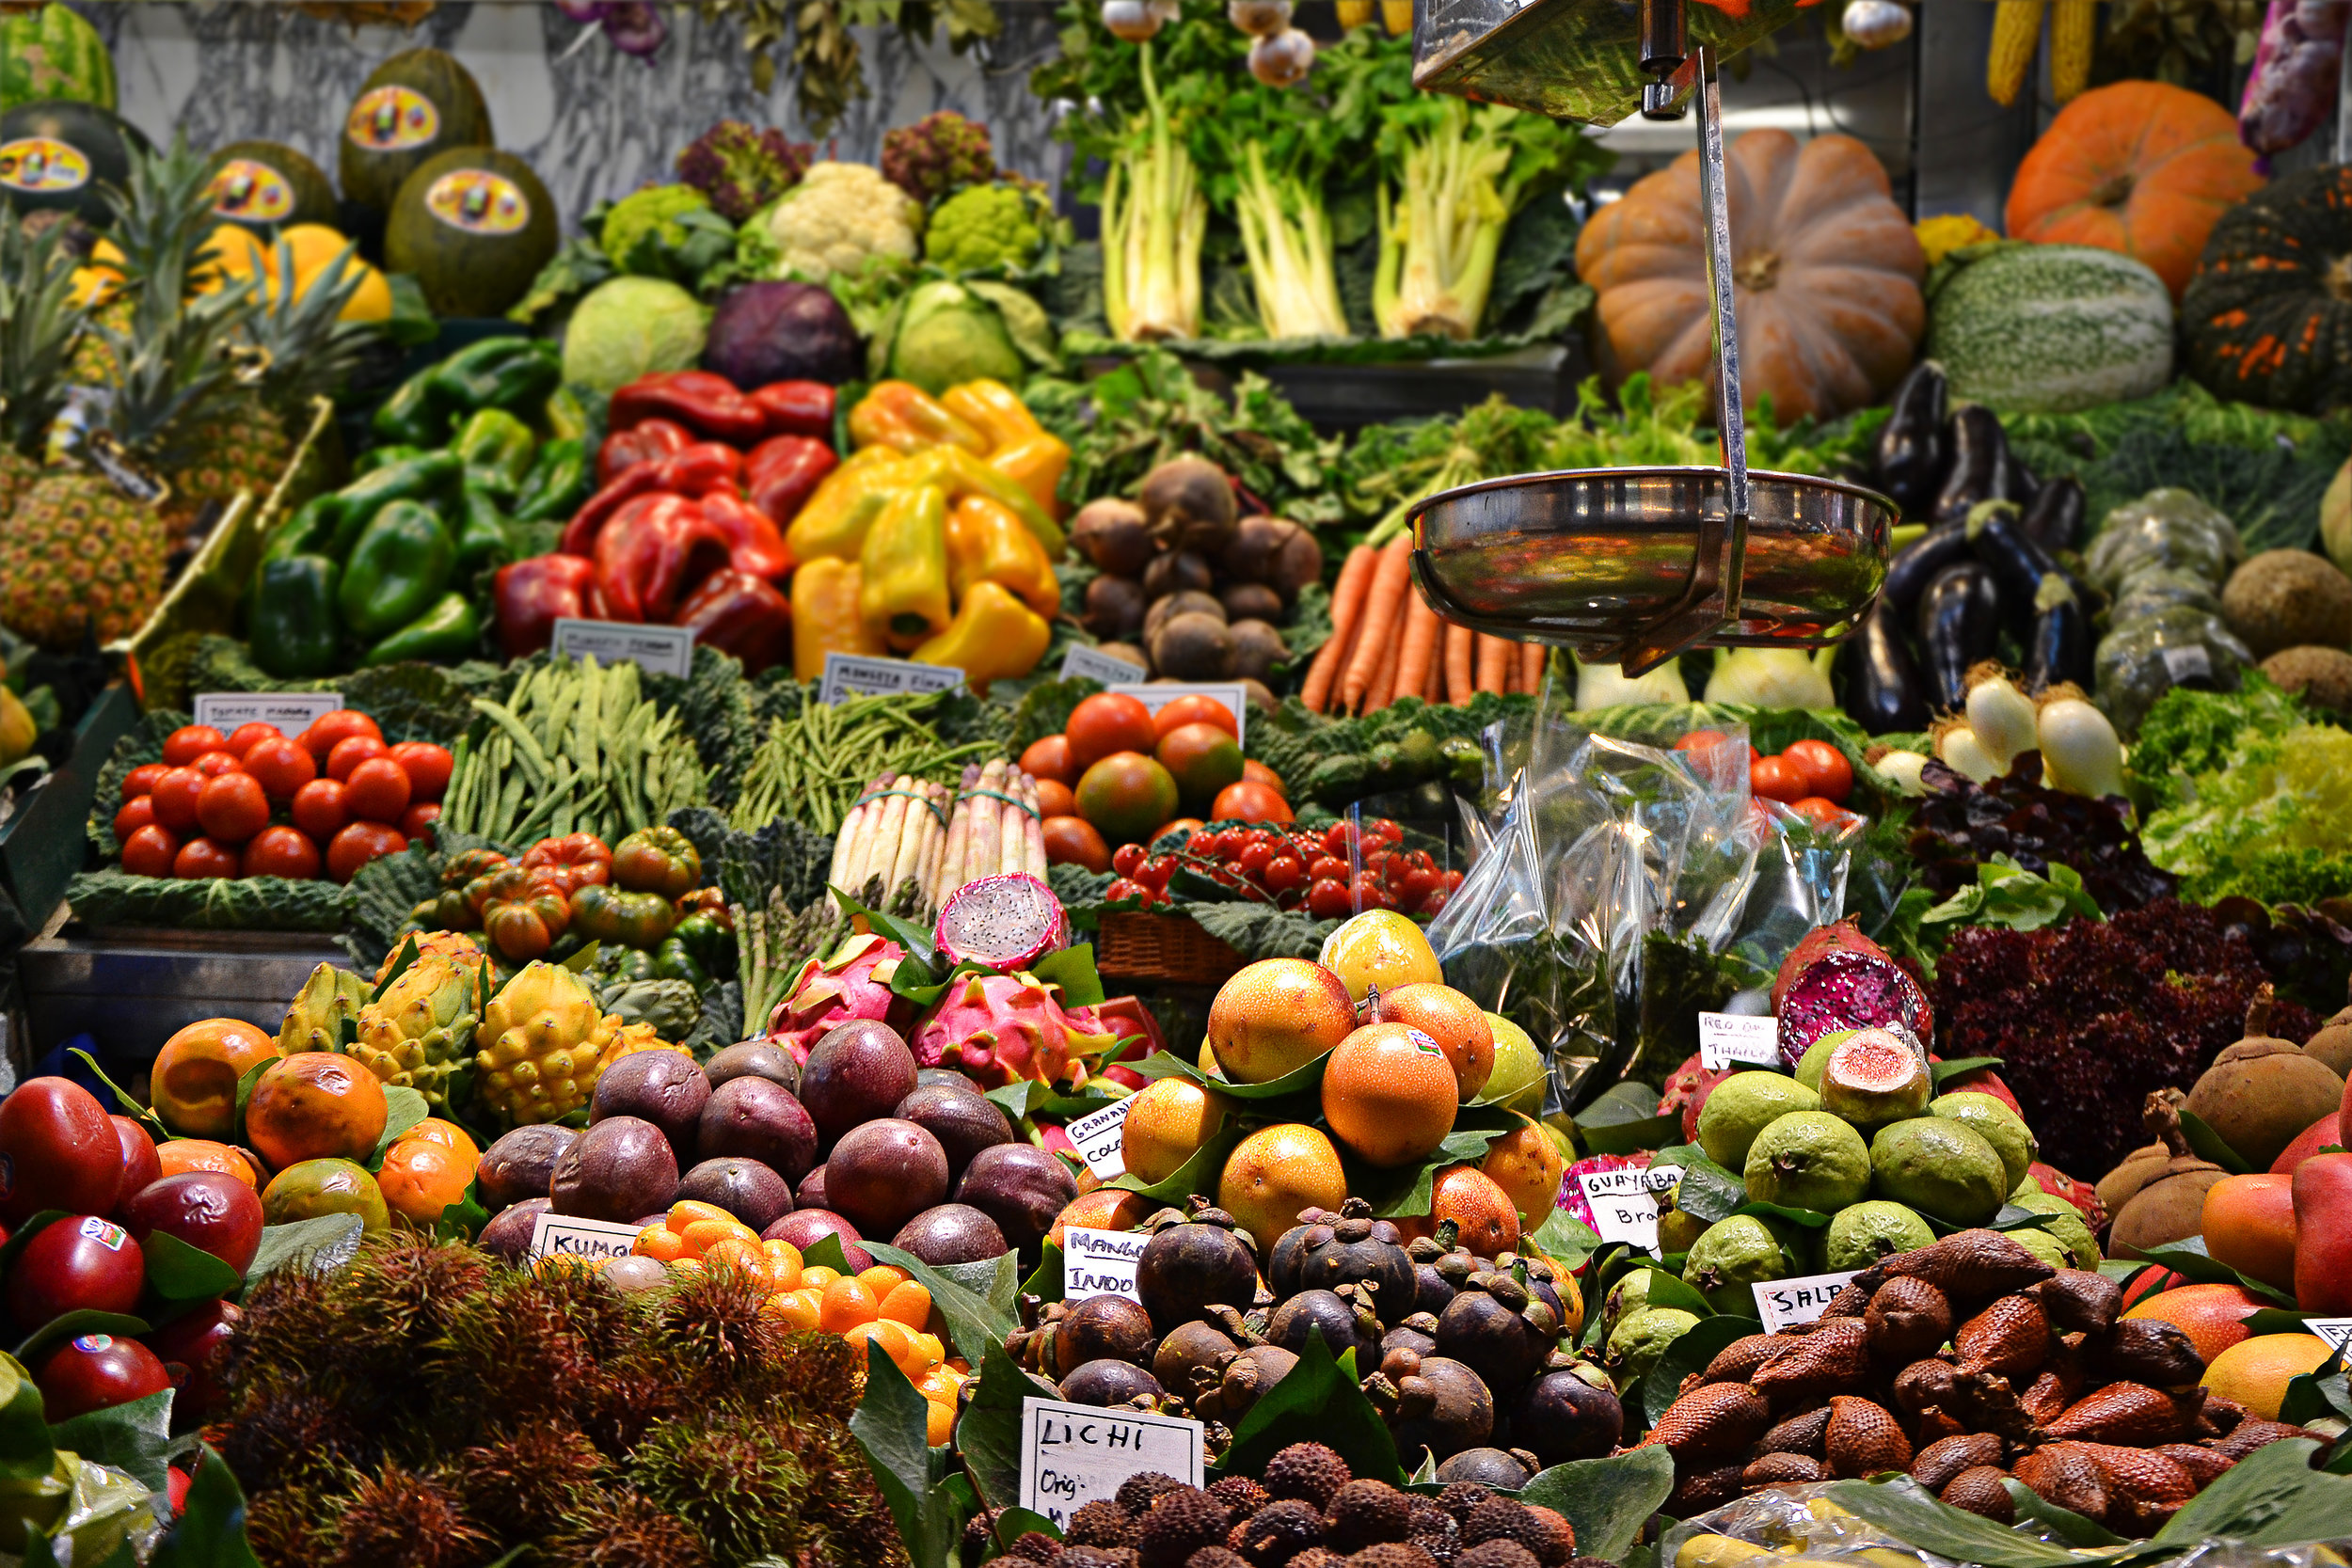 Choosing the right foods is the most important part of any diet plan